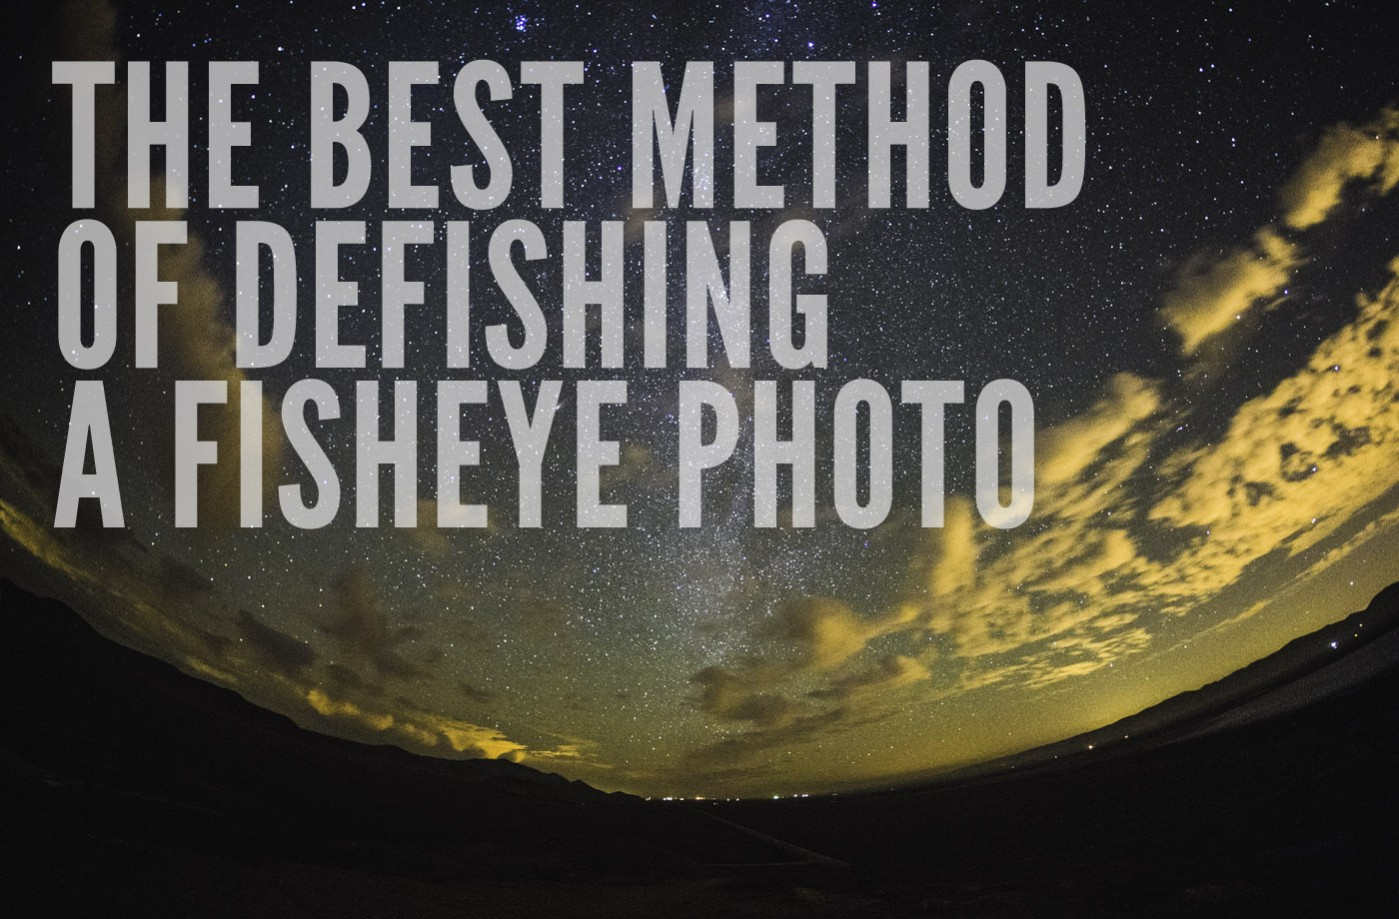 The Best Method of Defishing a Fisheye Photo – Lonely Speck